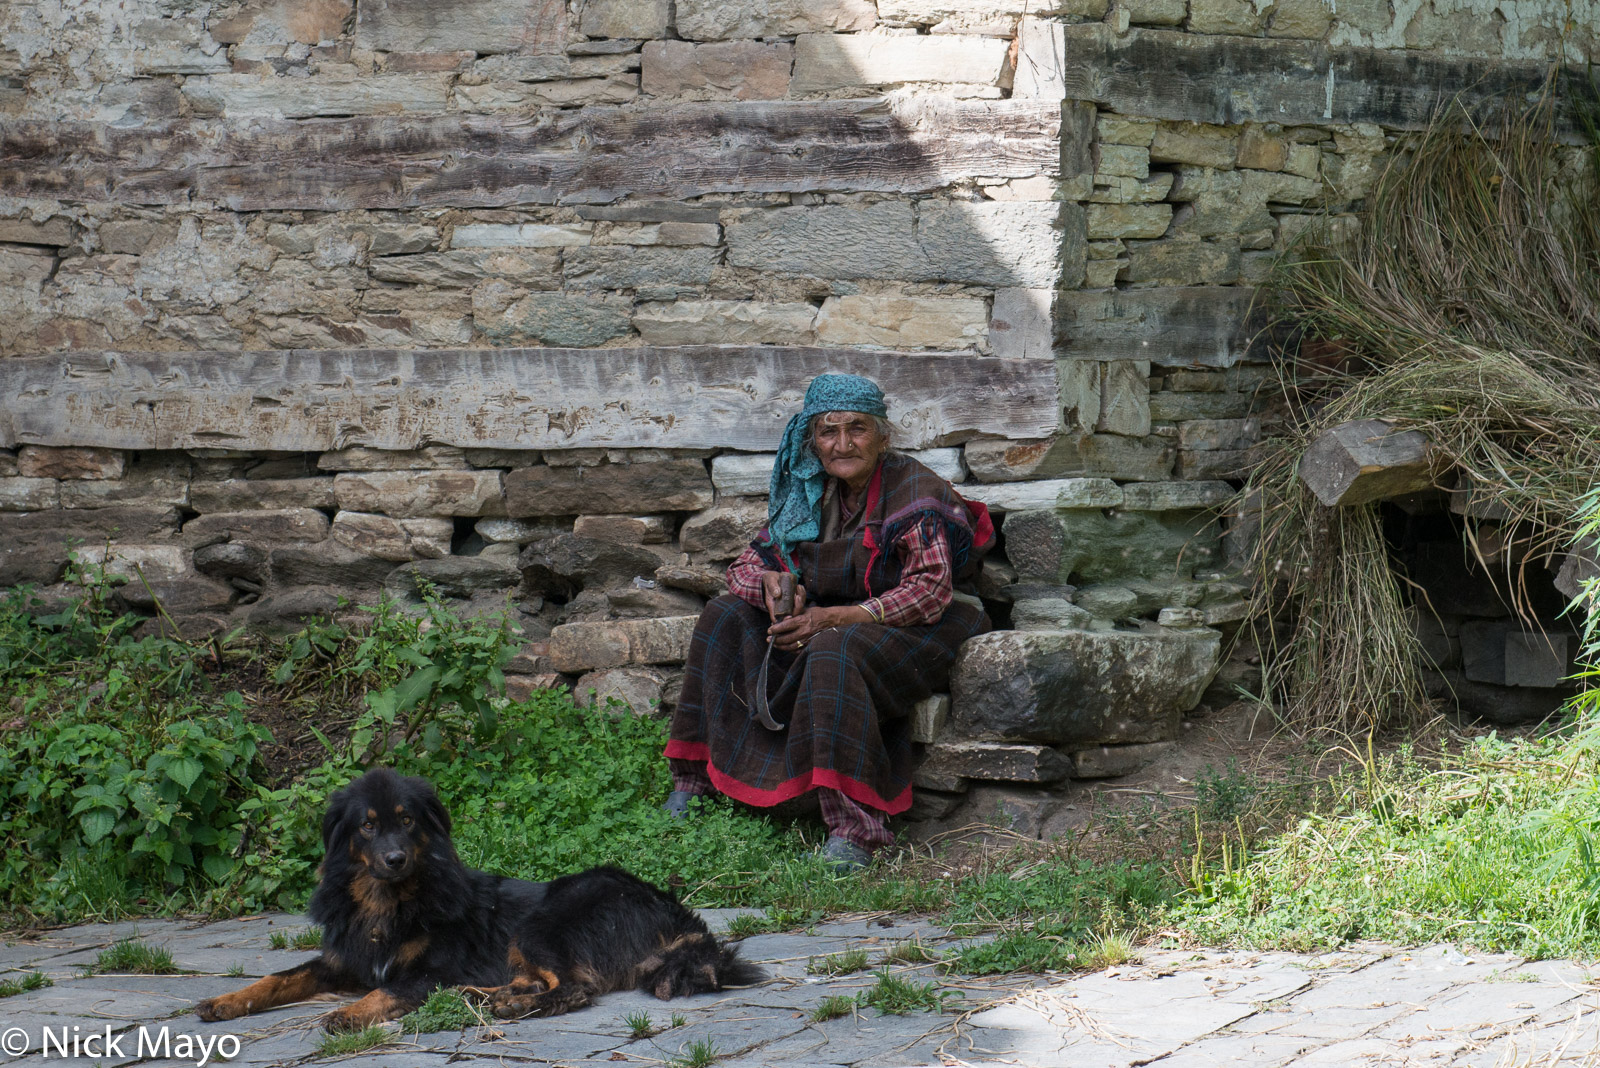 Dog, Himachal Pradesh, India, photo